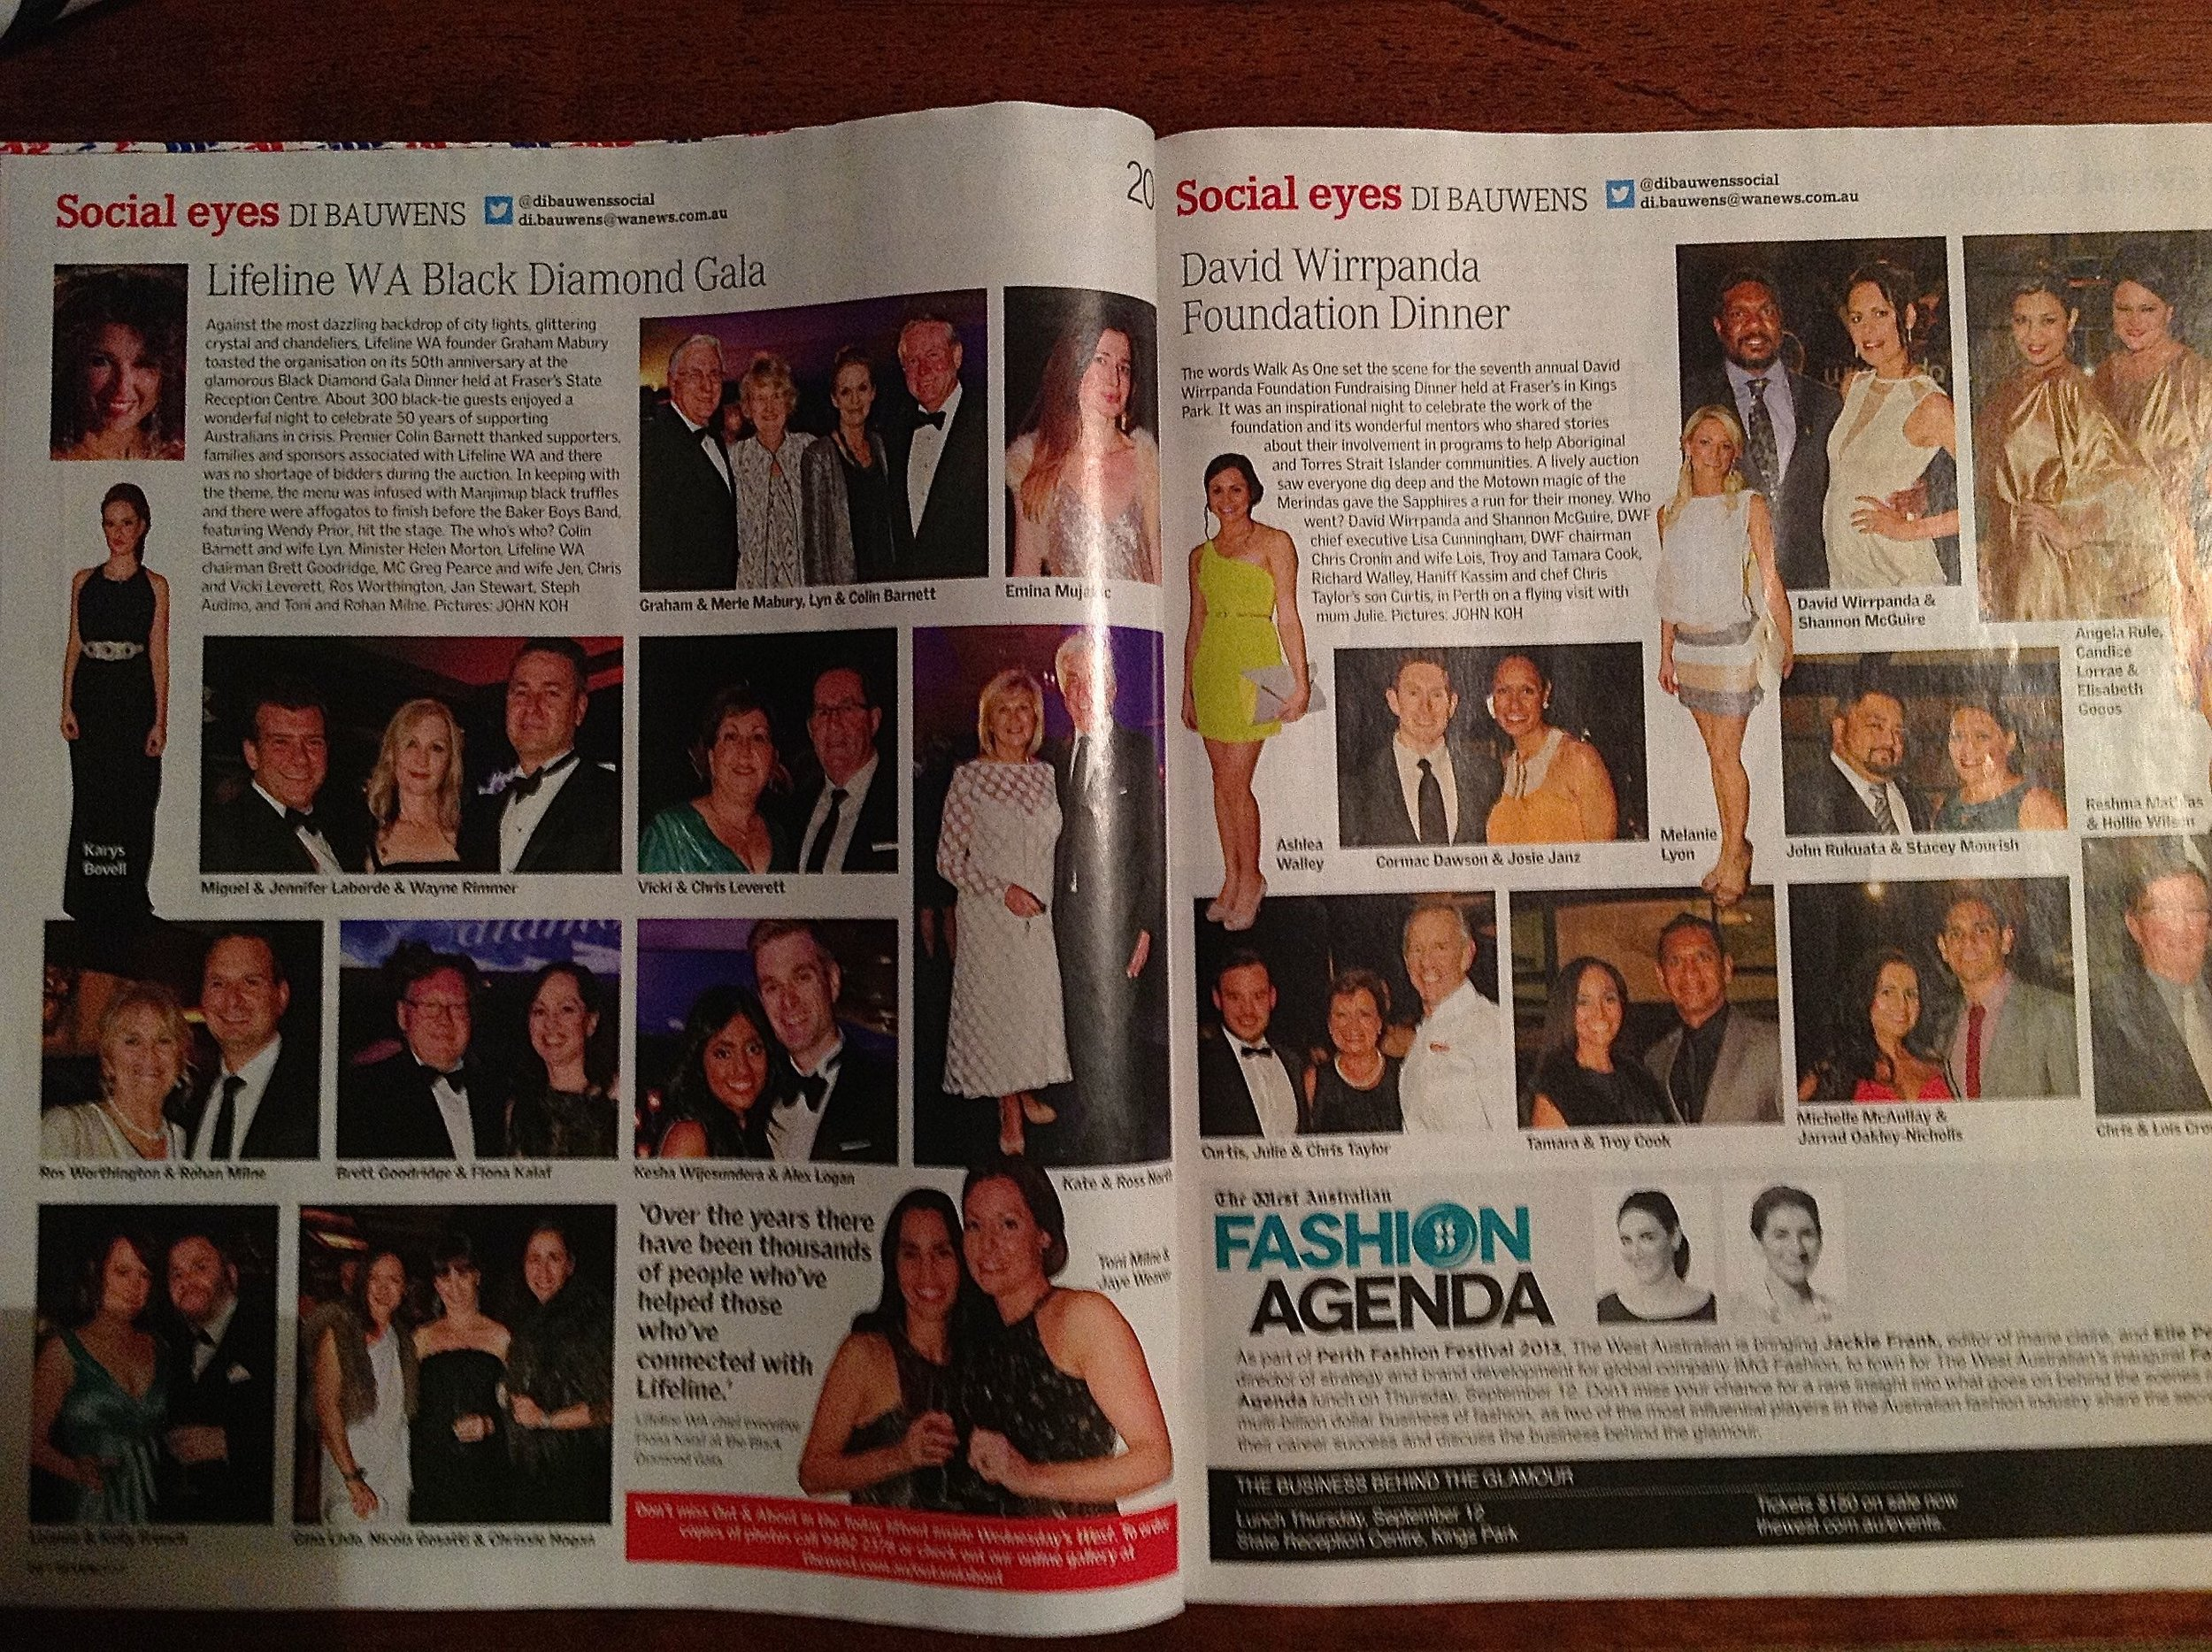 Known Associates Events In the Media6.jpg